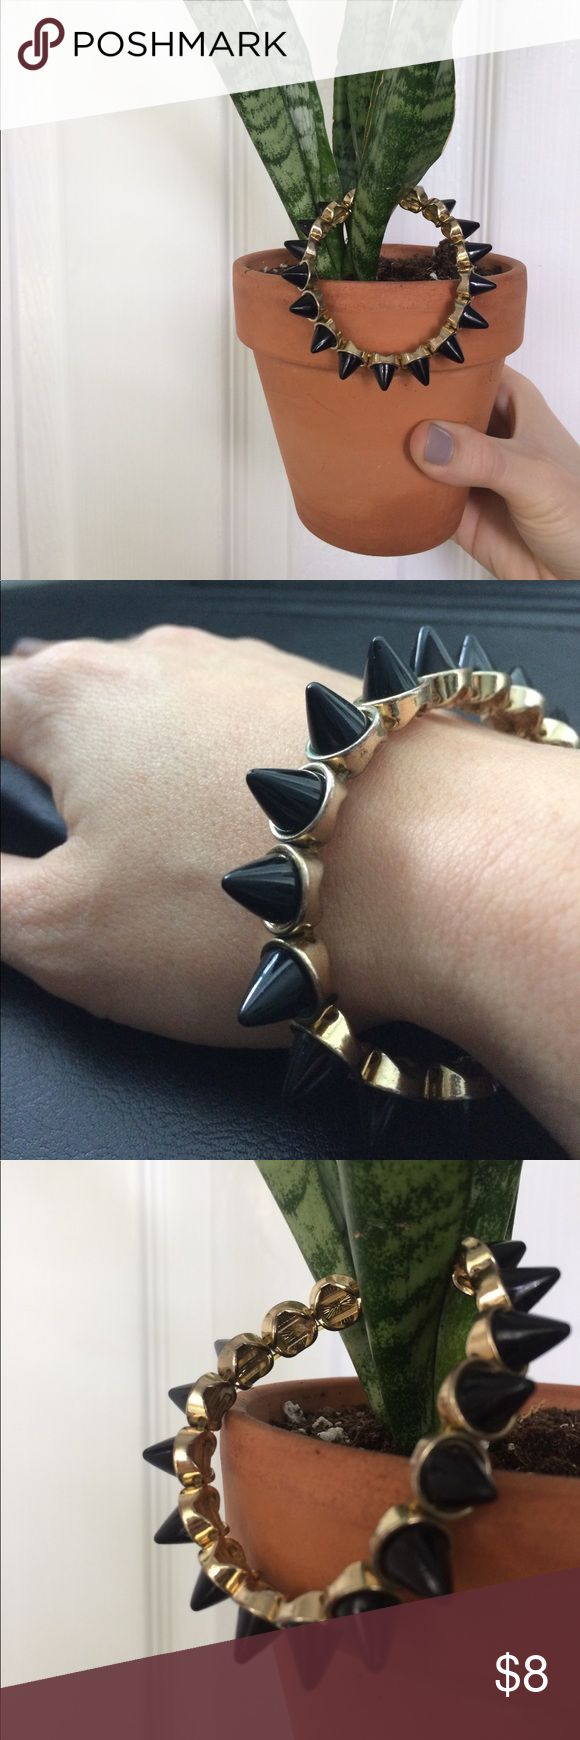 Black & Gold Spike Bracelet Perfect for spicing up an outfit! Boutique black and gold bracelet with matte black spikes Accessories